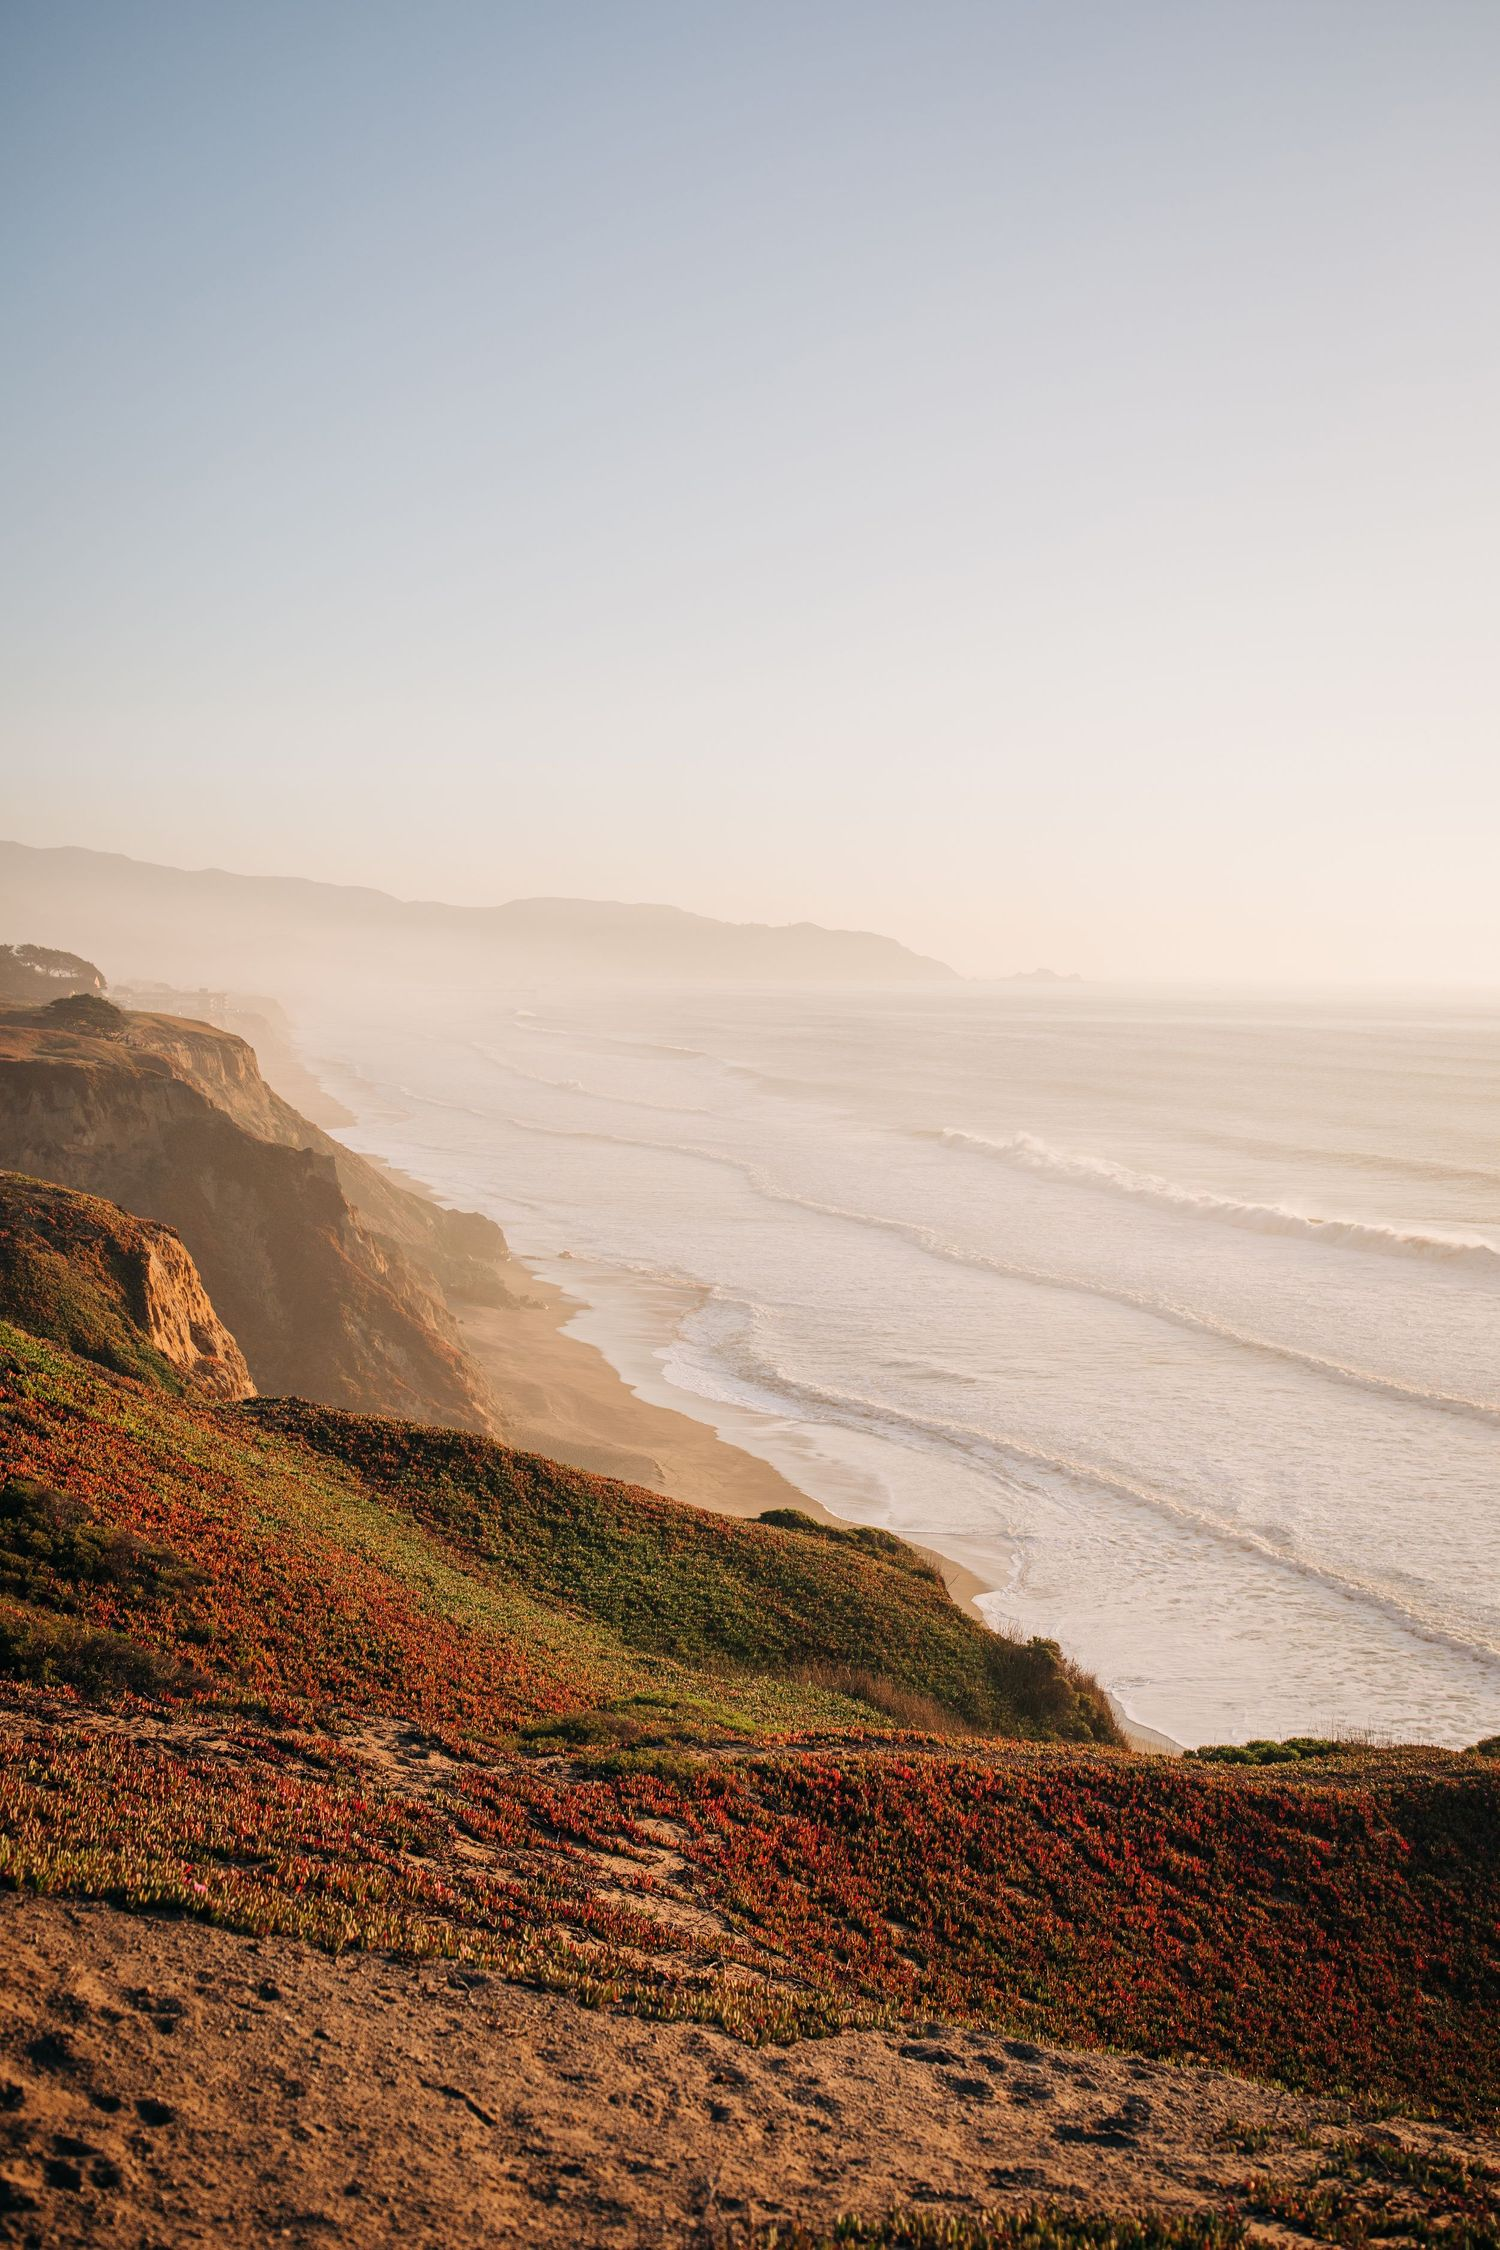 A view of Mussel Rock in Pacifica, California during an engagement photoshoot.